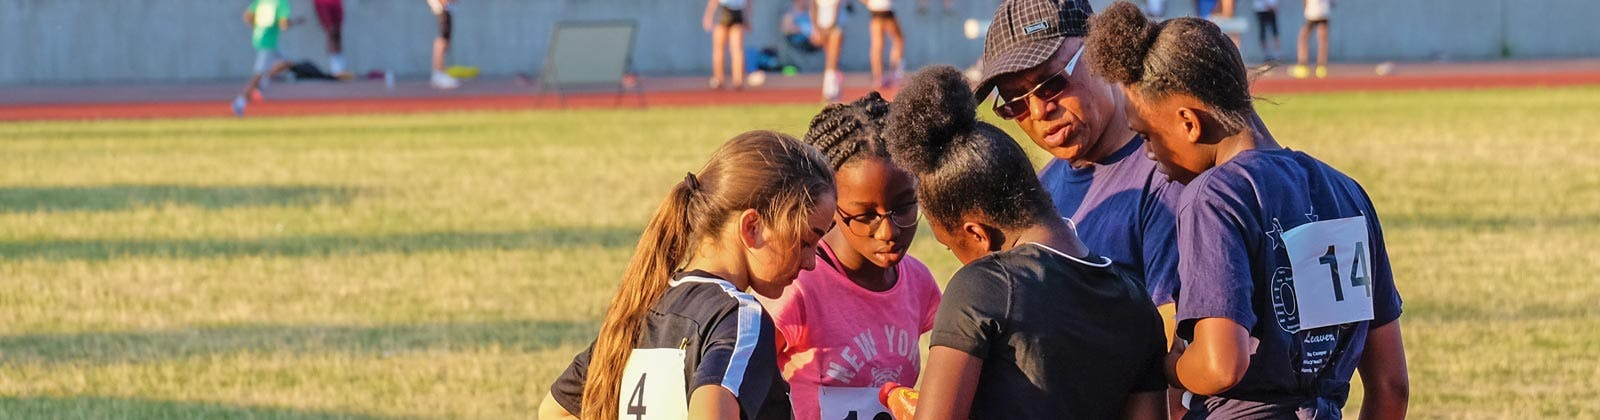 Track Academy Team Huddle